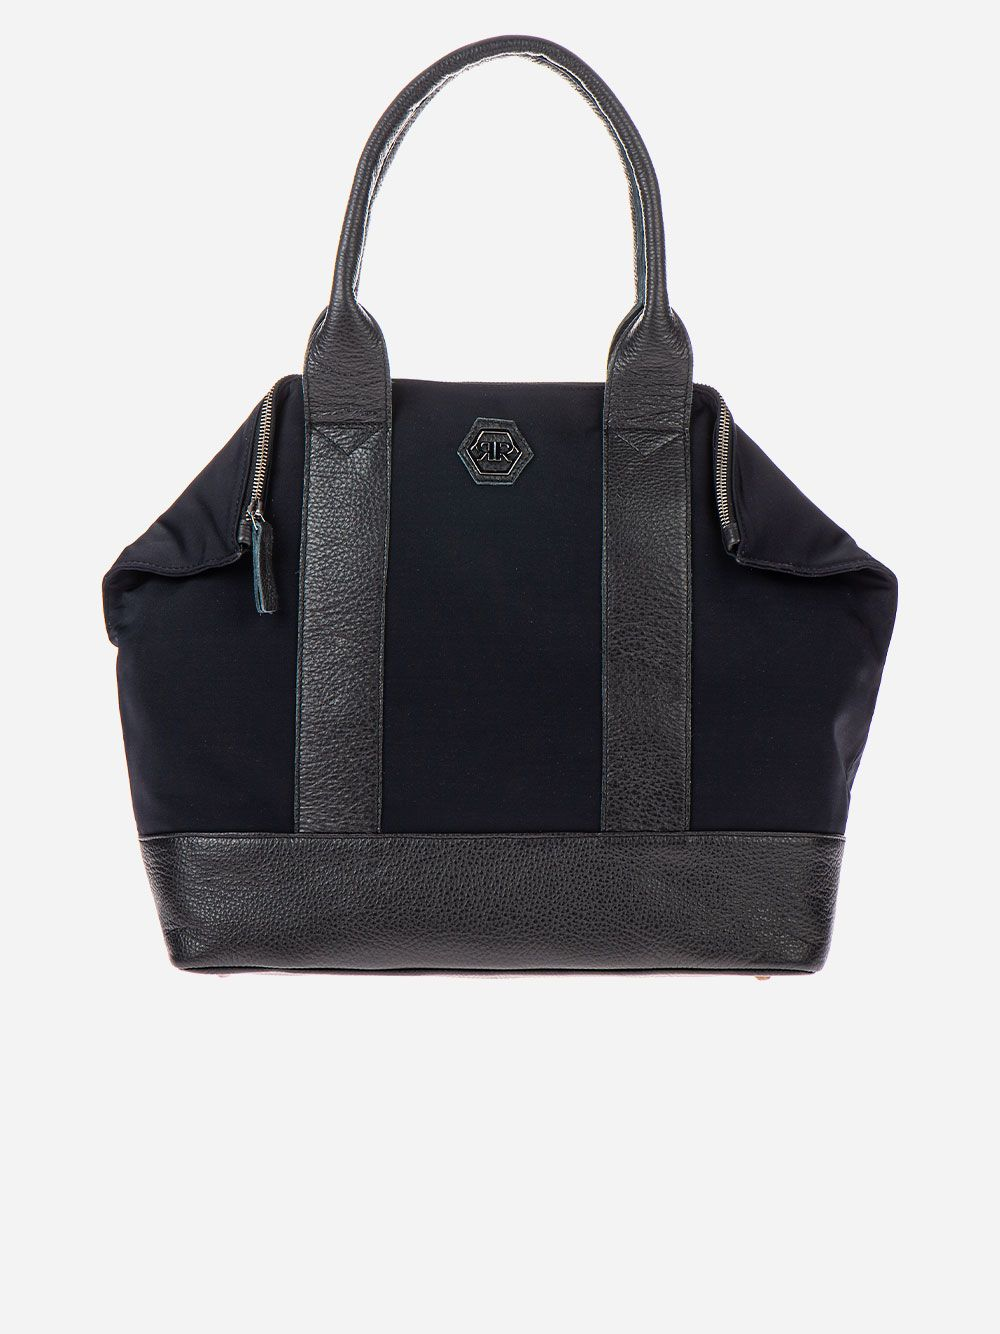 Black Nylon Shoulder Bag | Rufel